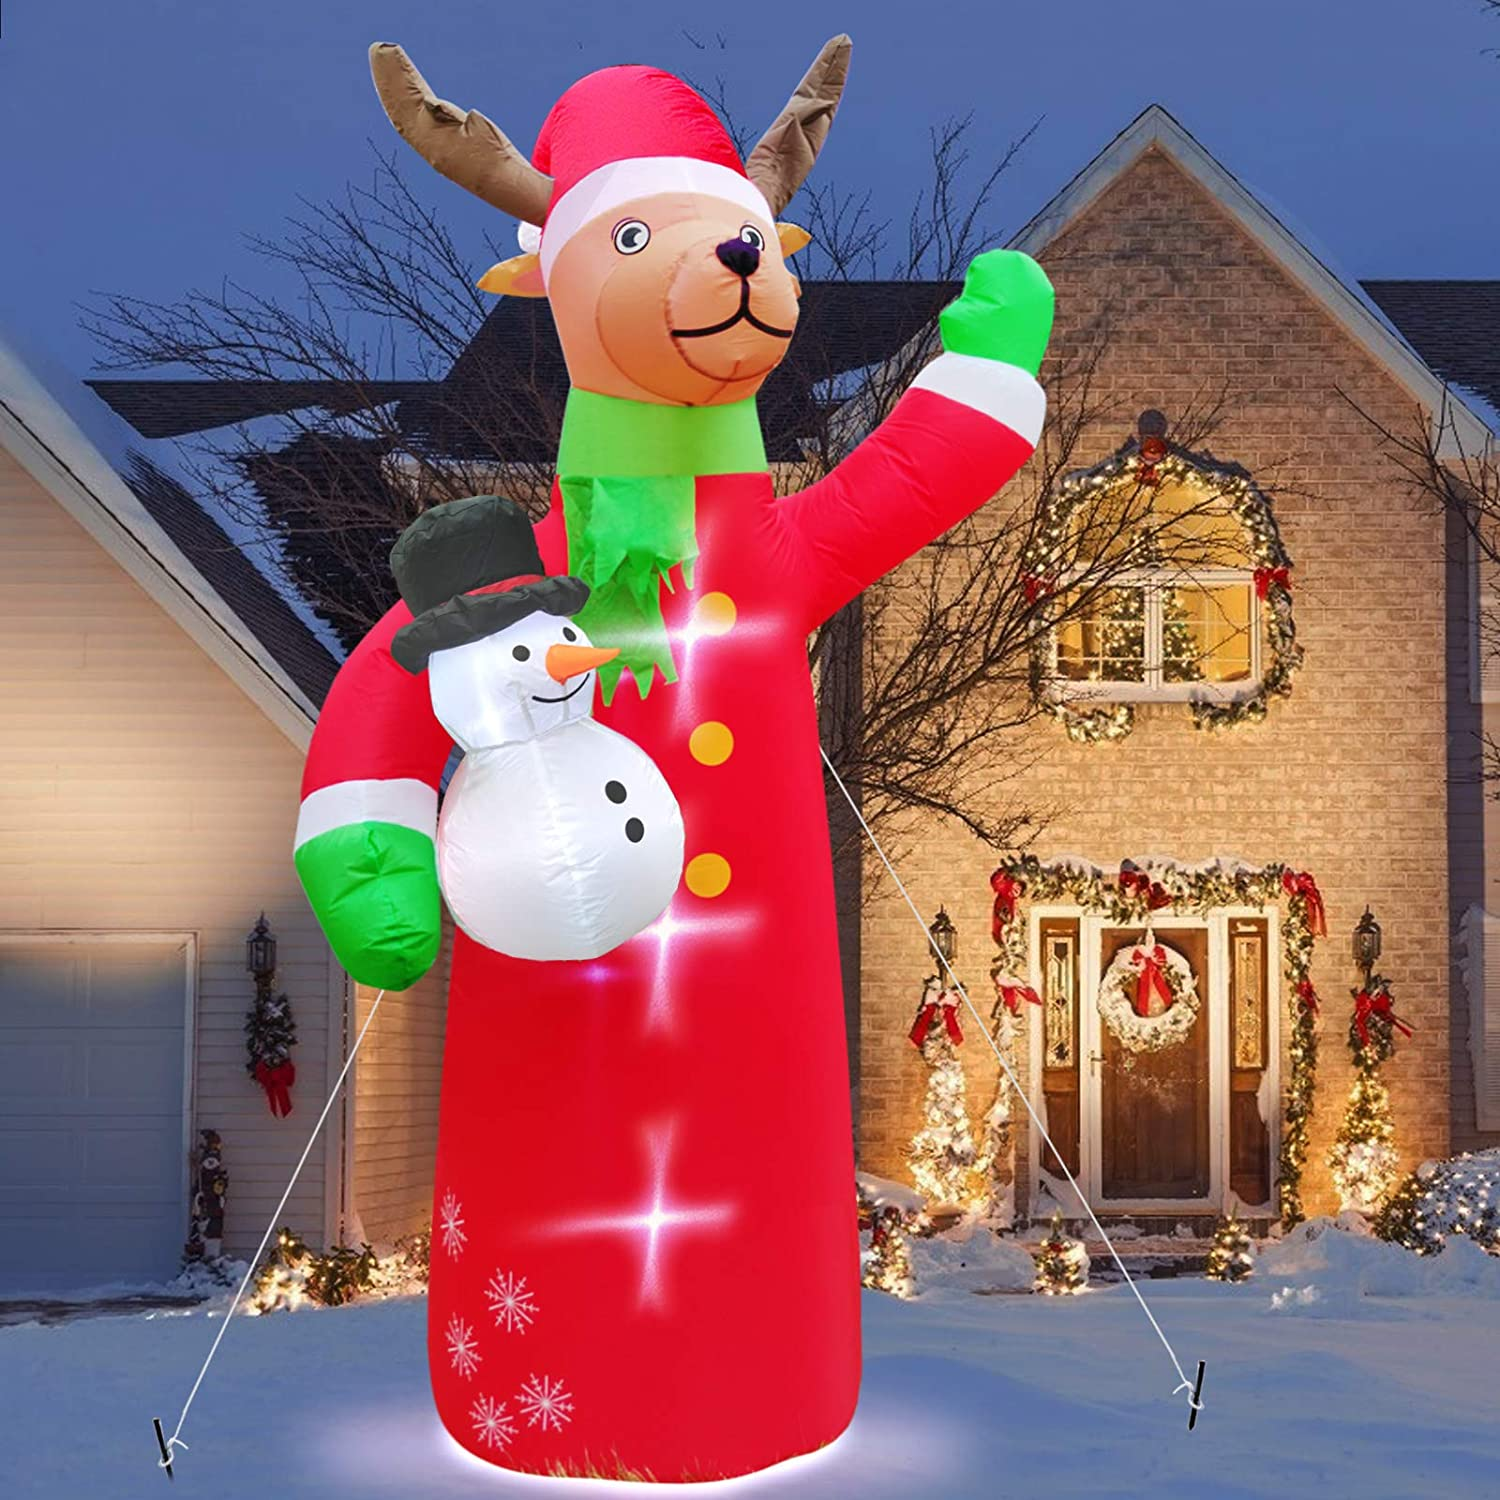 TURNMEON 7 Feet Christmas Inflatables Reindeer Holds Snowman Christmas Decorations Outdoor Built-in LED Lighted Blow Up Christmas Decorations with Tethers Stakes for Outdoor Yard Lawn Party Decor